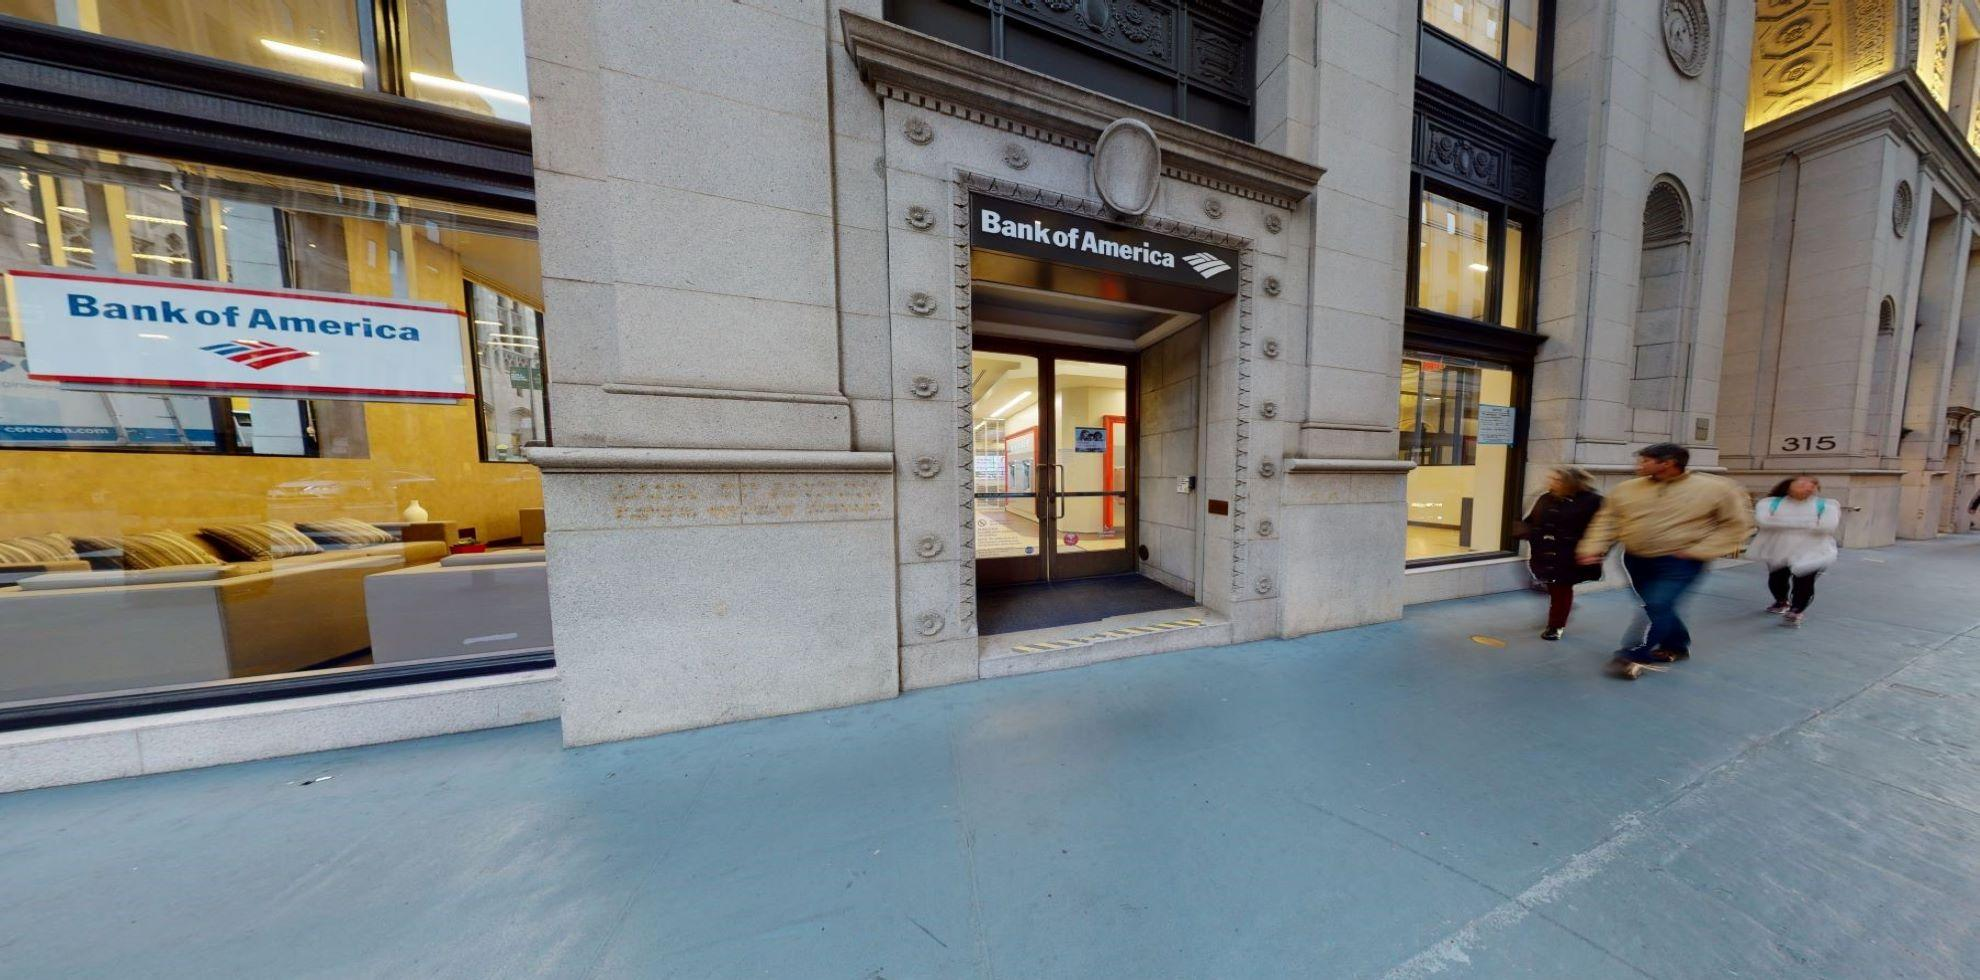 Bank of America financial center with walk-up ATM | 315 Montgomery St, San Francisco, CA 94104